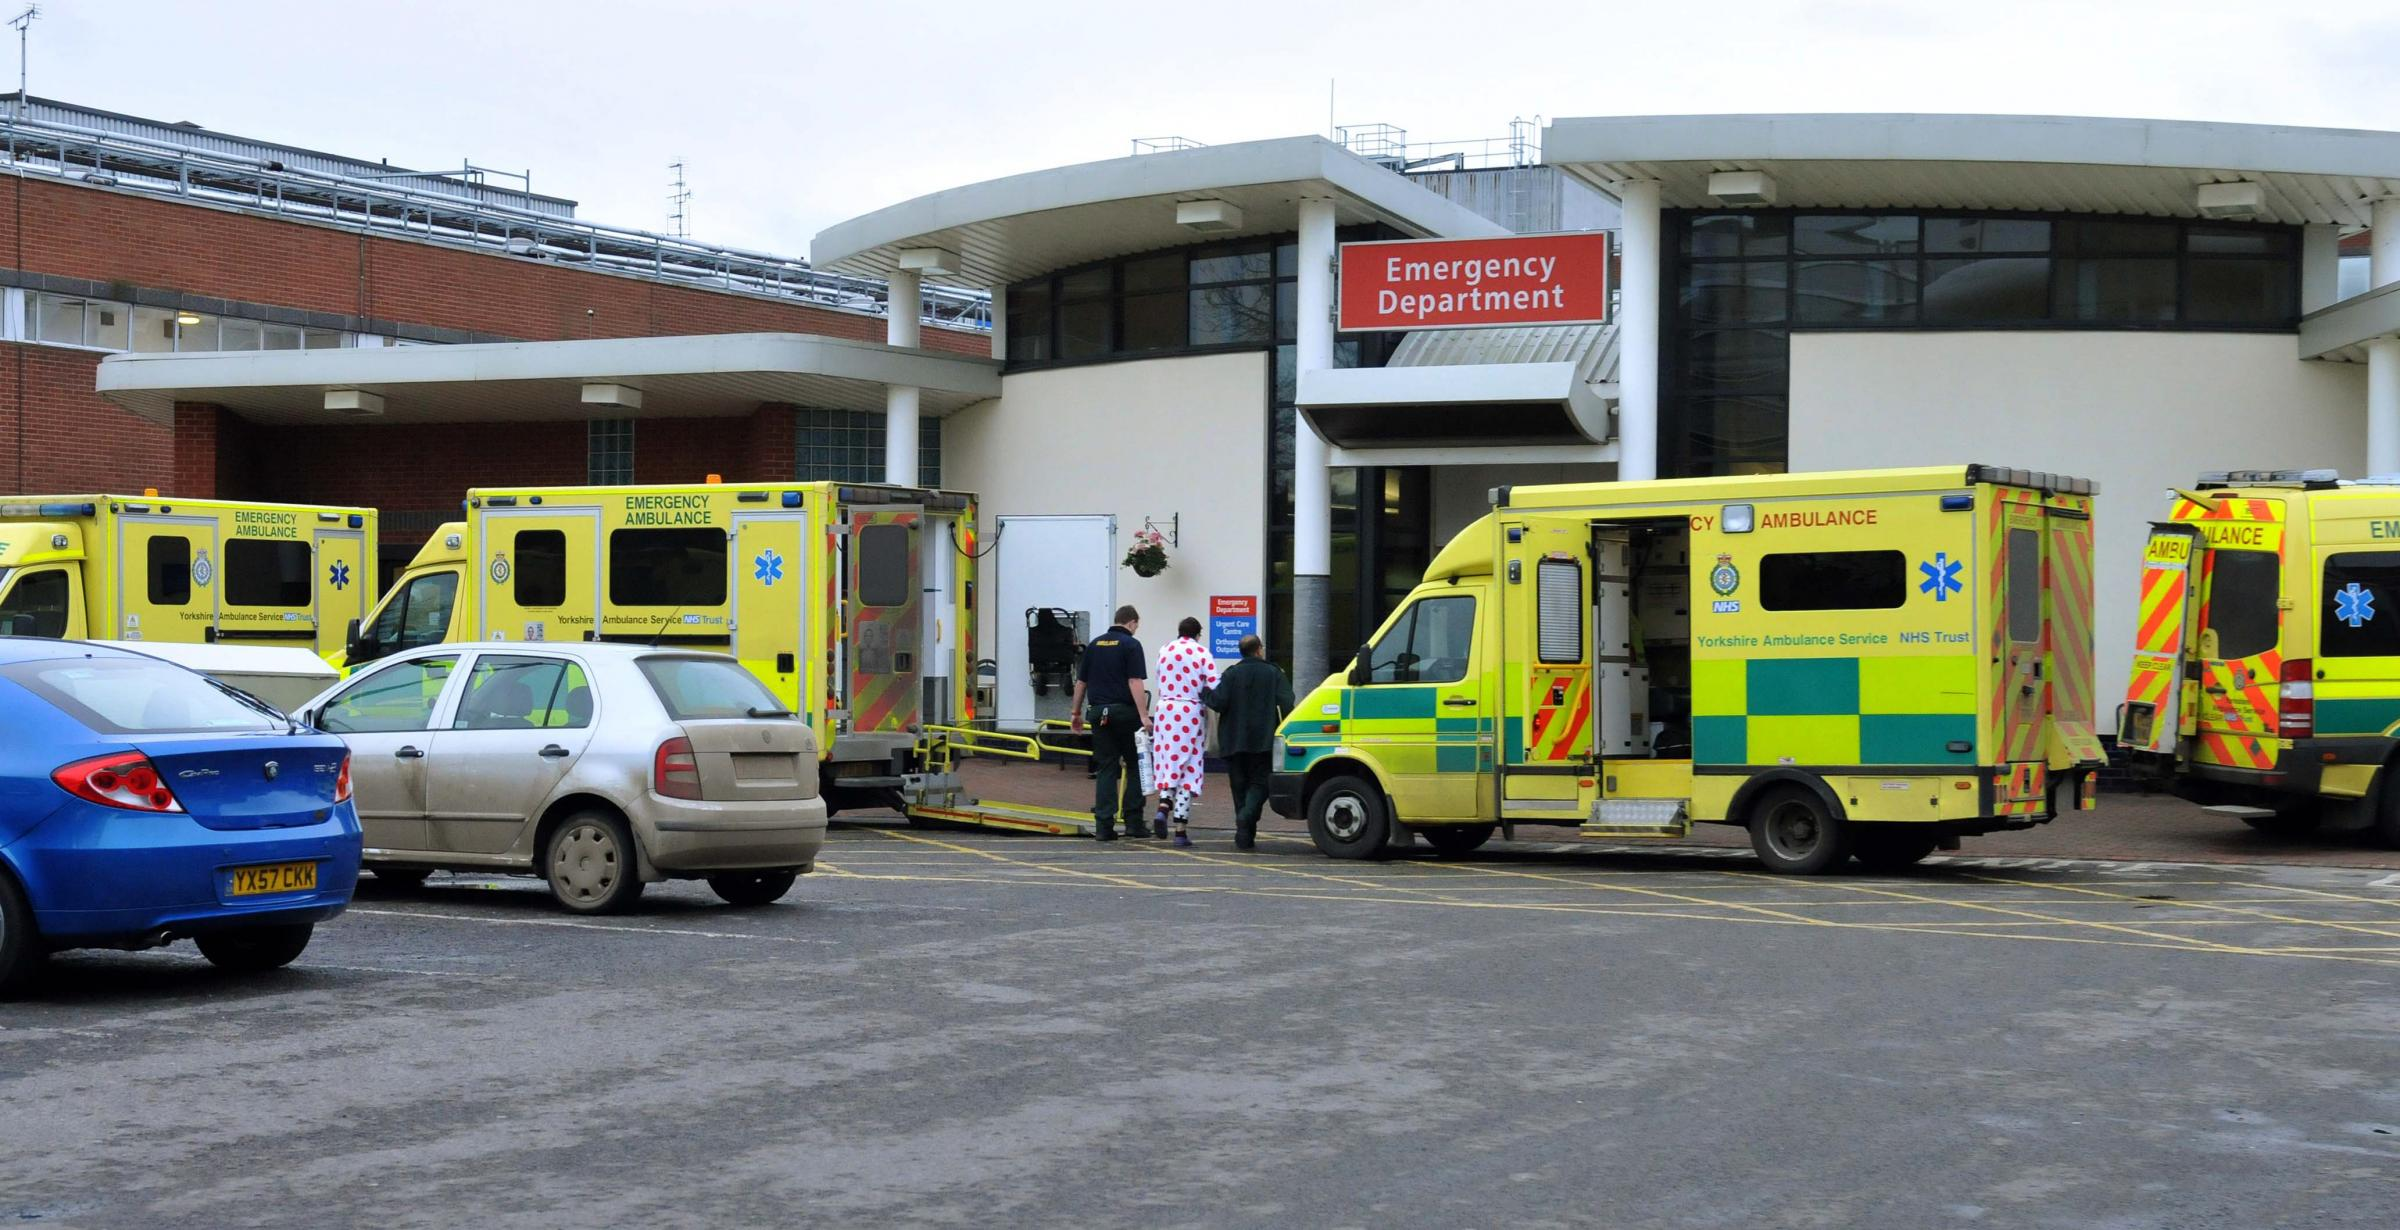 Ambulances at York Hospital.